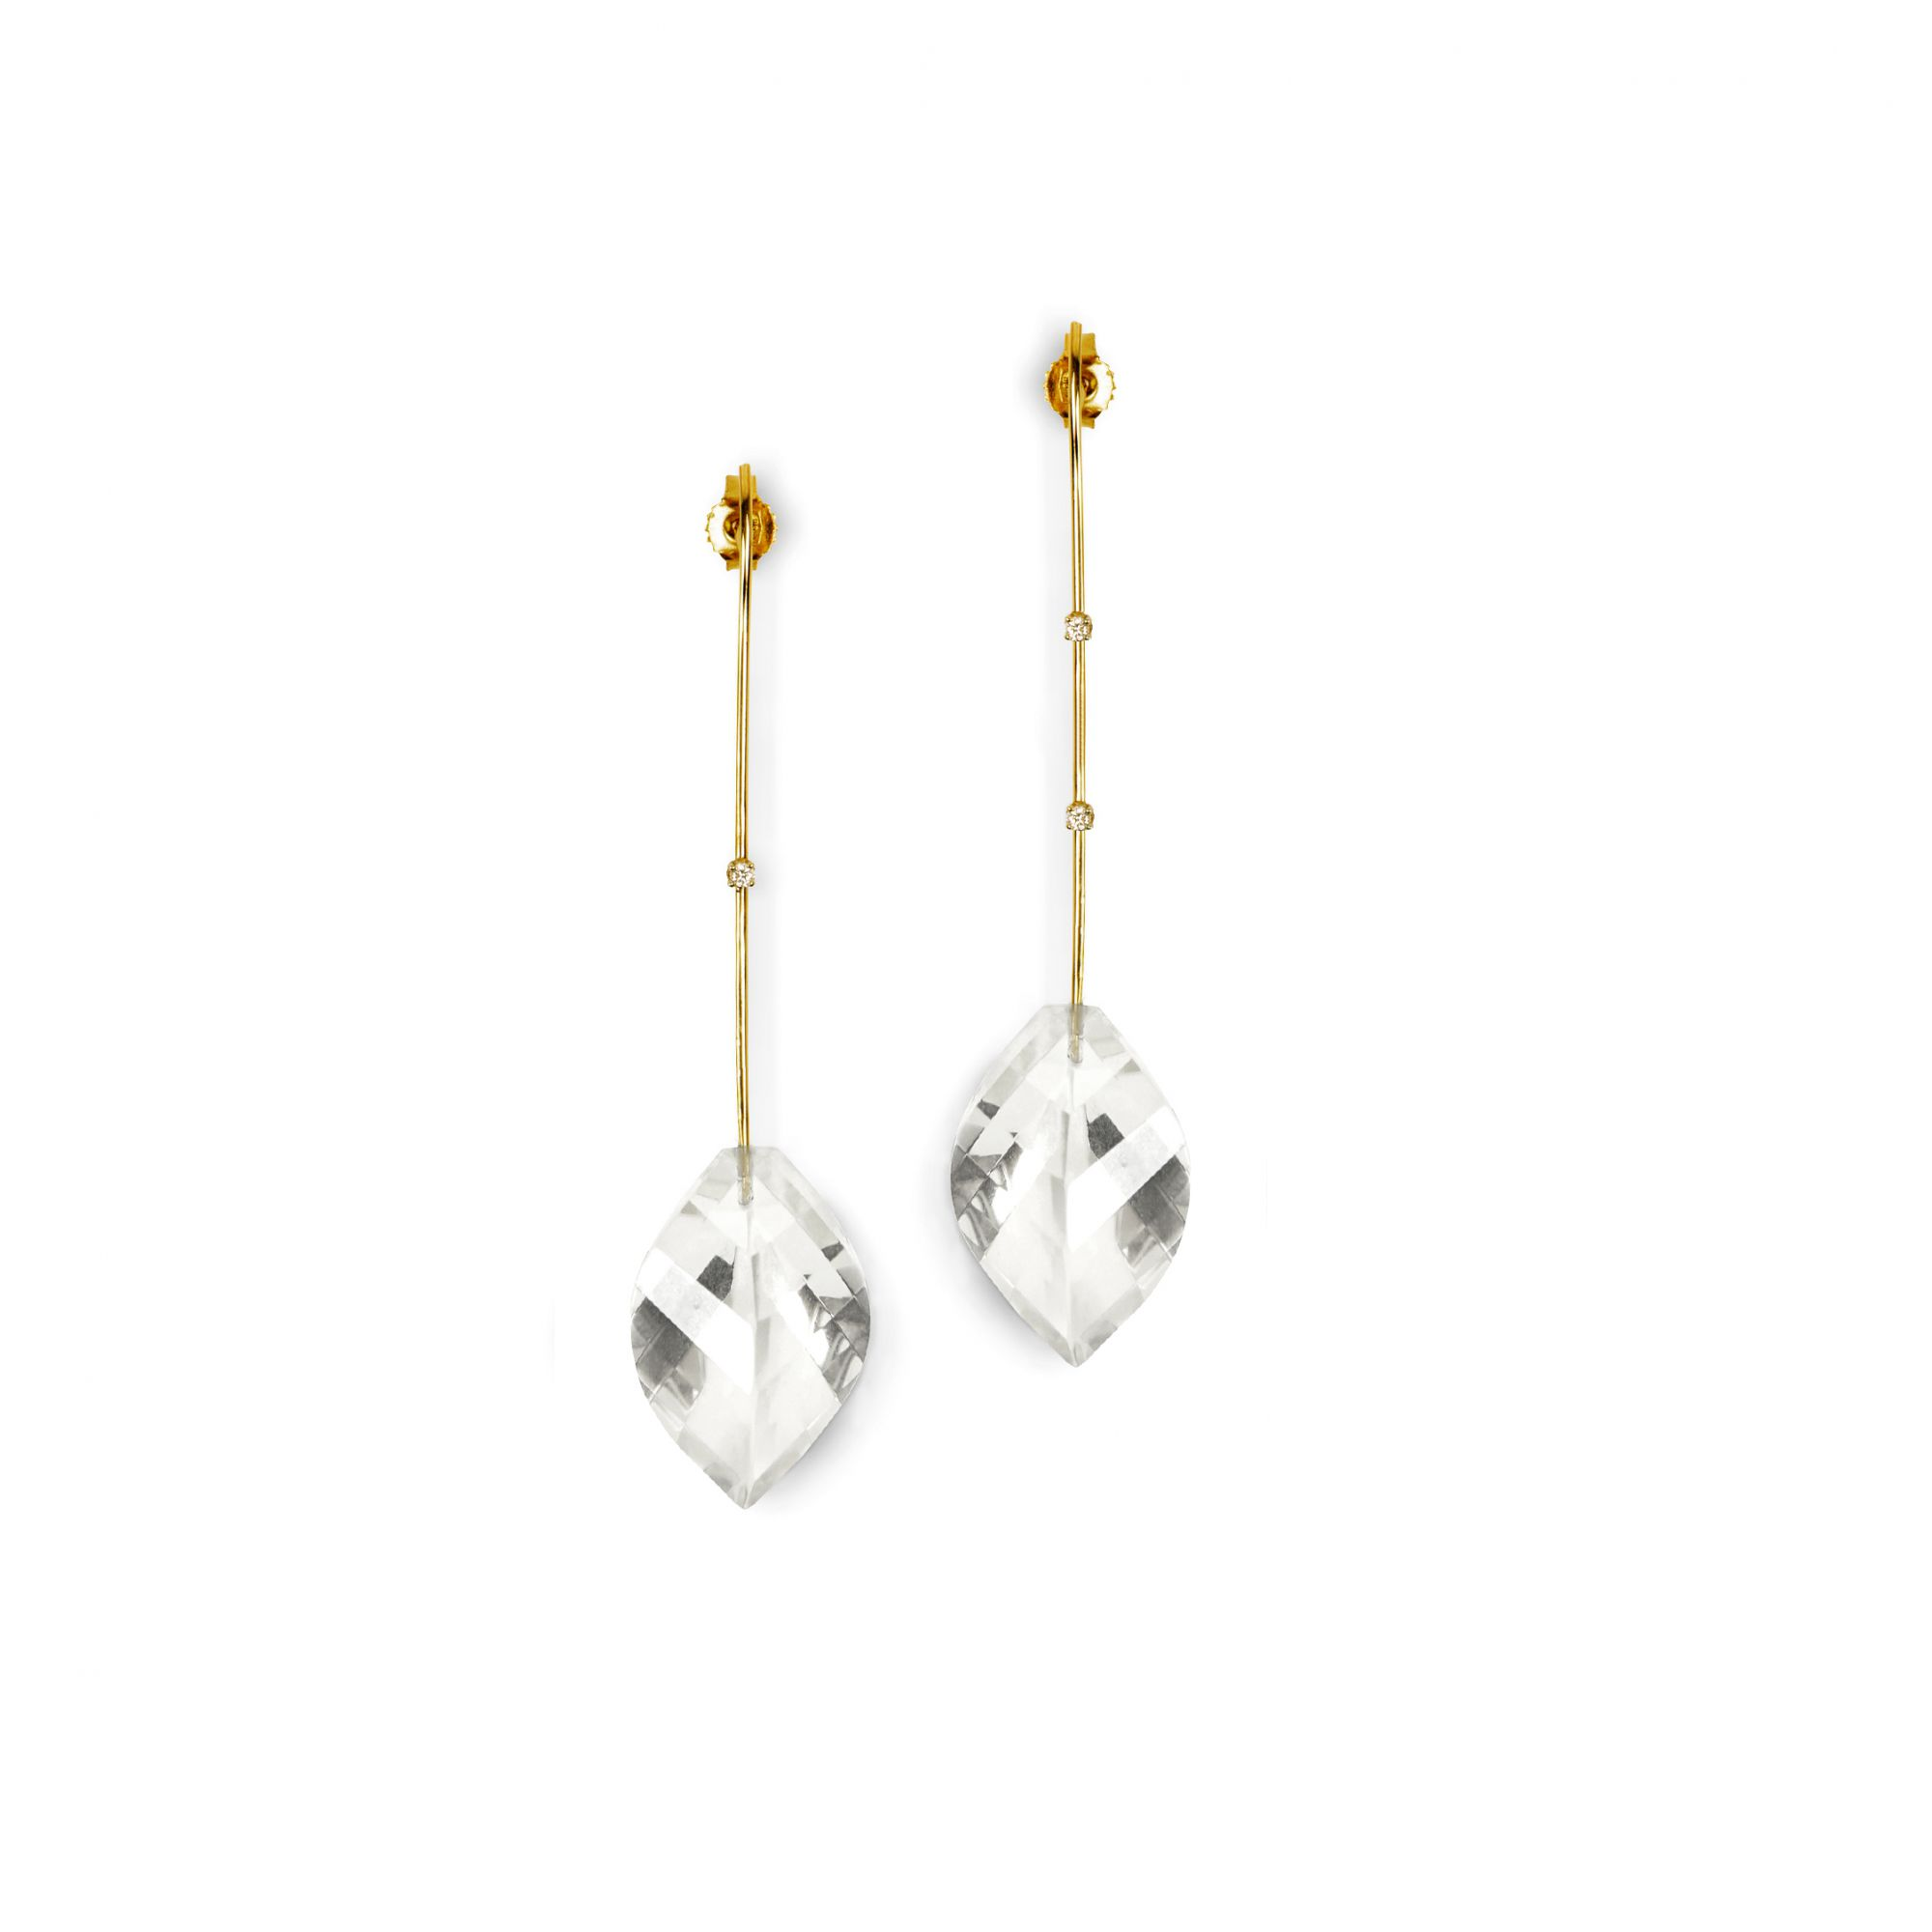 Yellow gold 'Amo' earrings Yellow gold earrings with crystals and diamonds